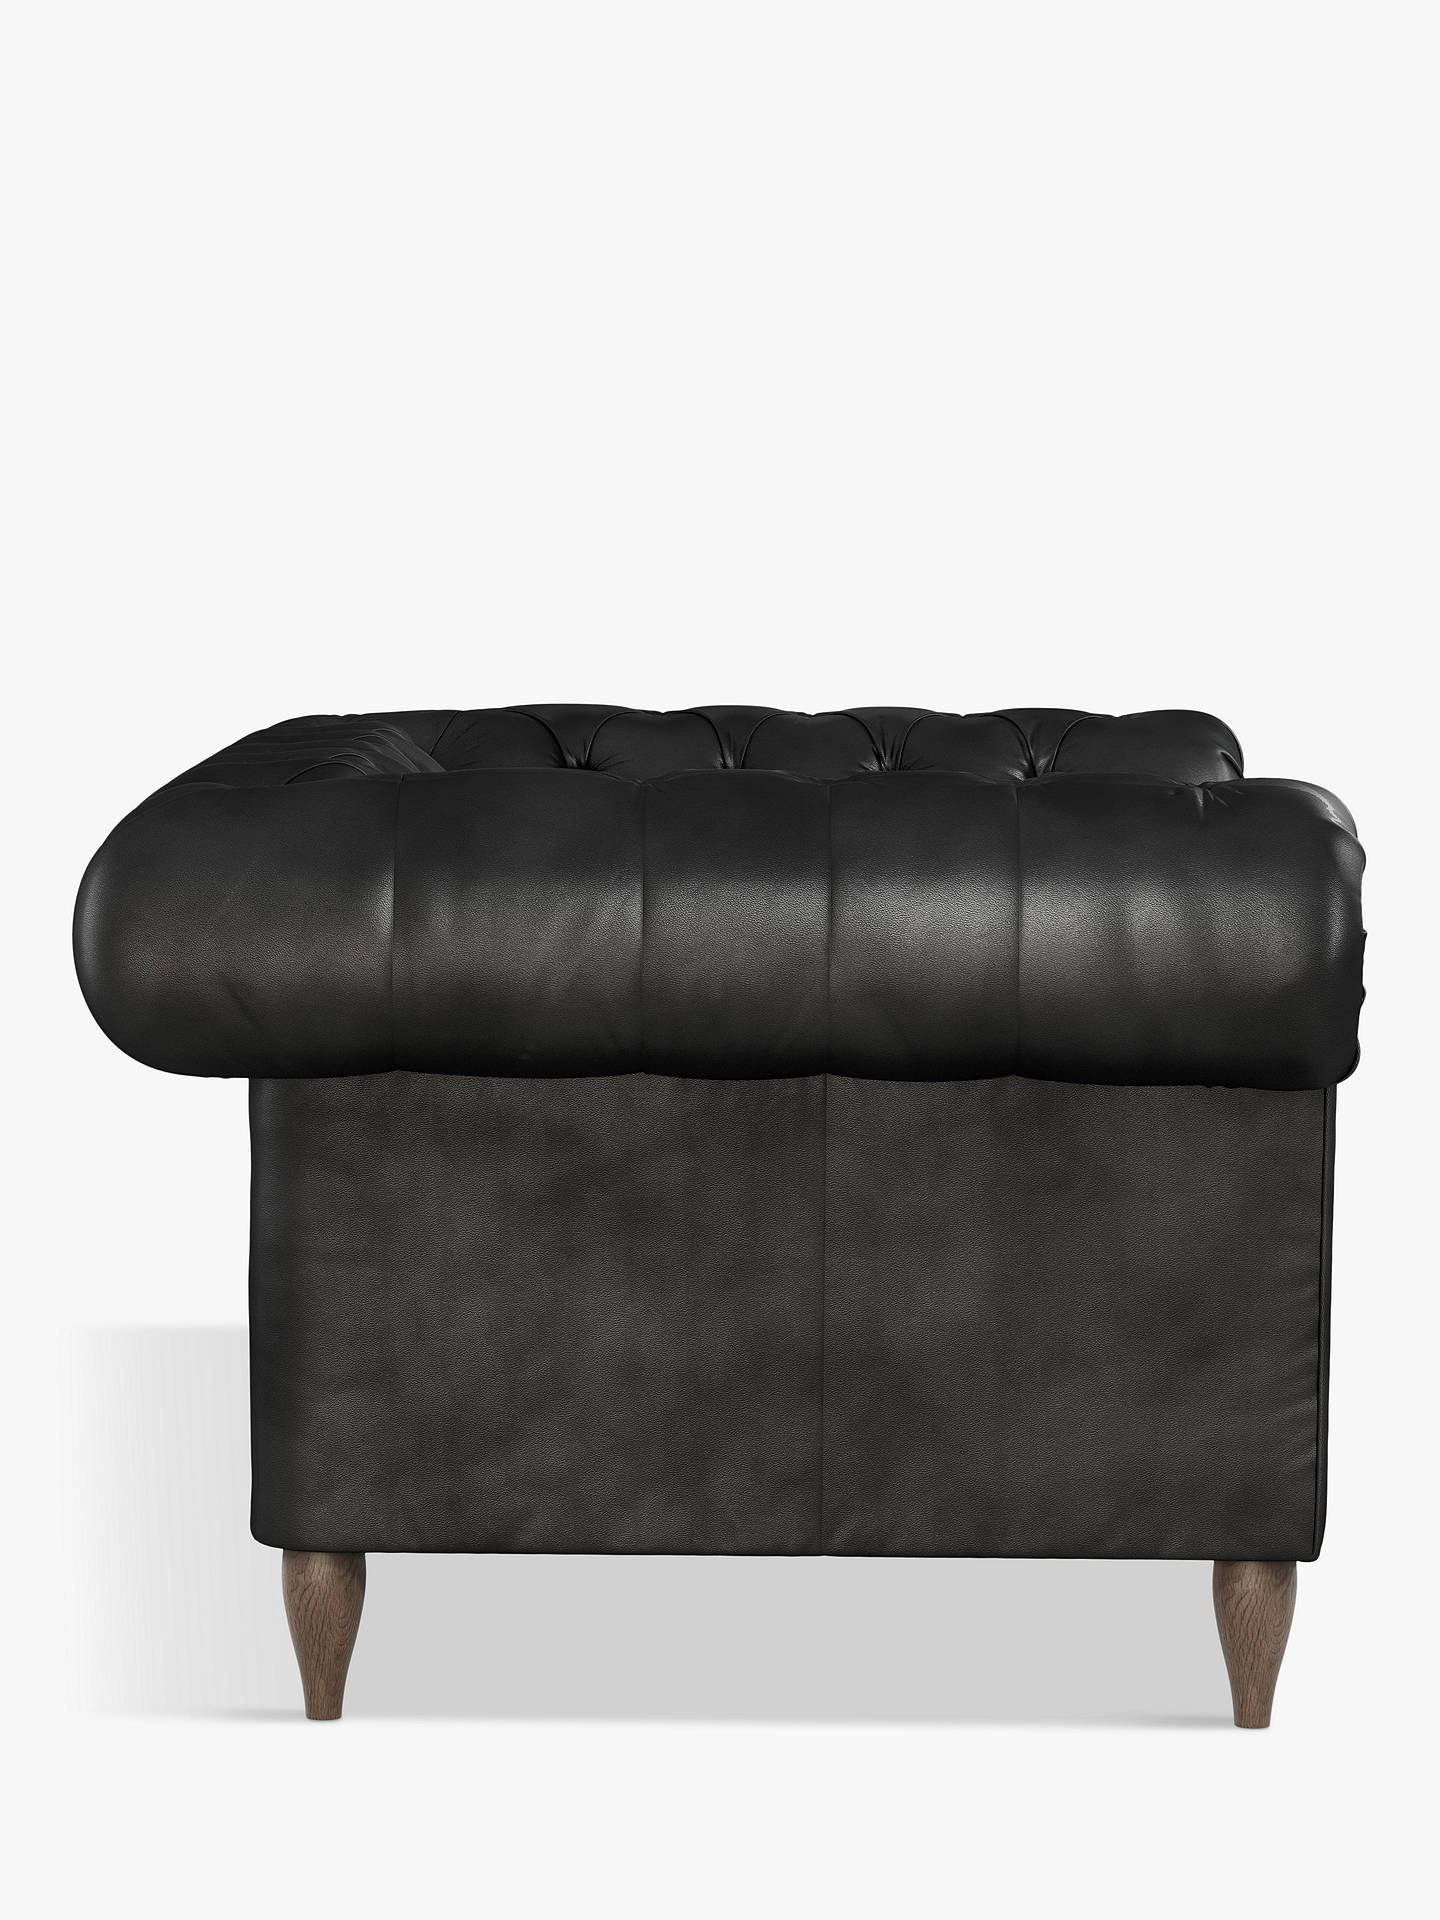 Buy John Lewis & Partners Cromwell Leather Snuggler, Dark Leg, Contempo Black Online at johnlewis.com